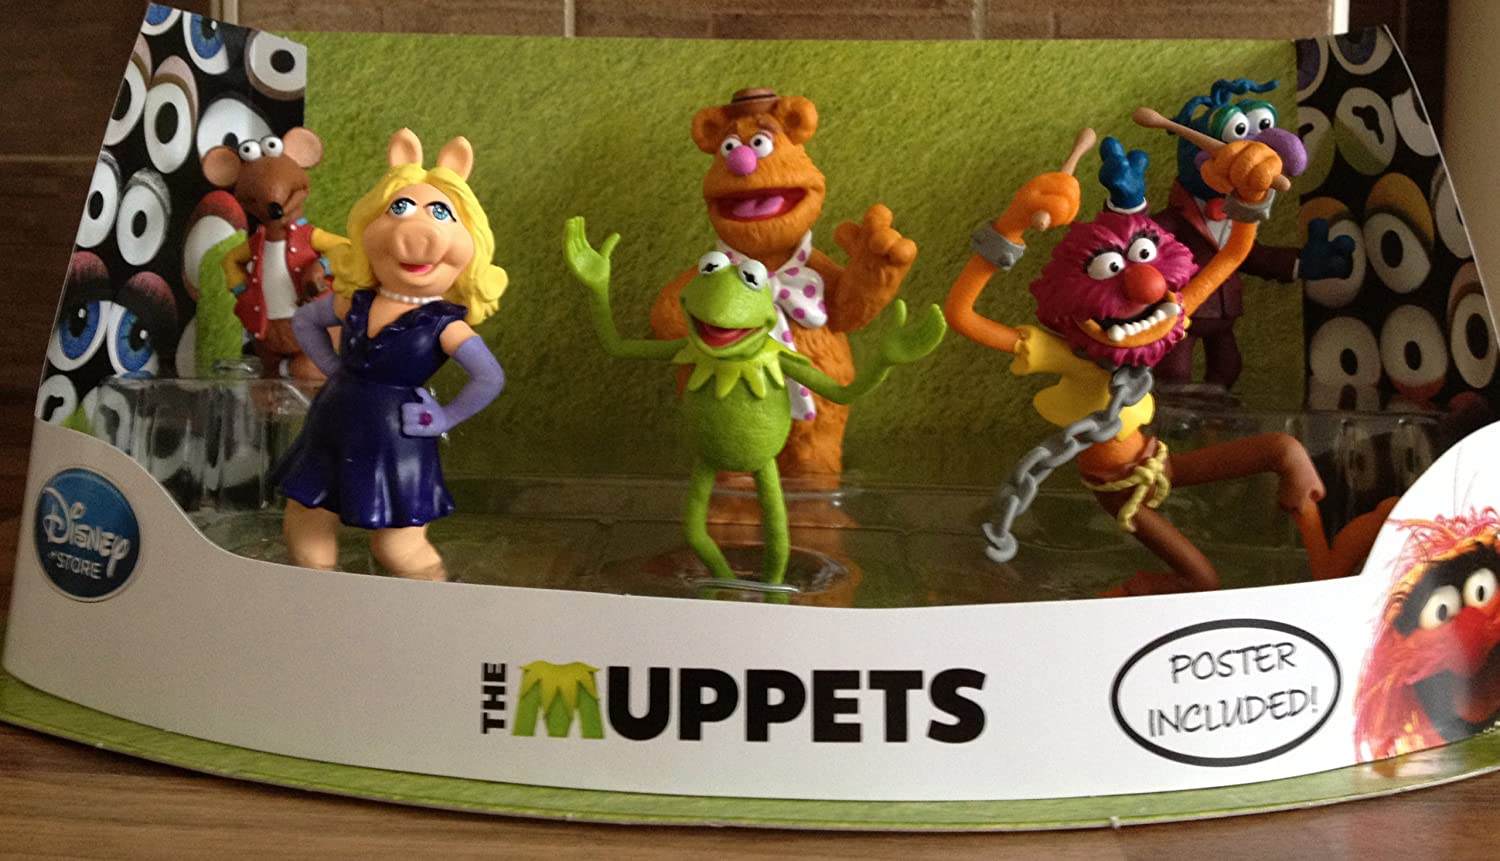 Disney, The Muppets Movie Character Figure Play Set kaufen